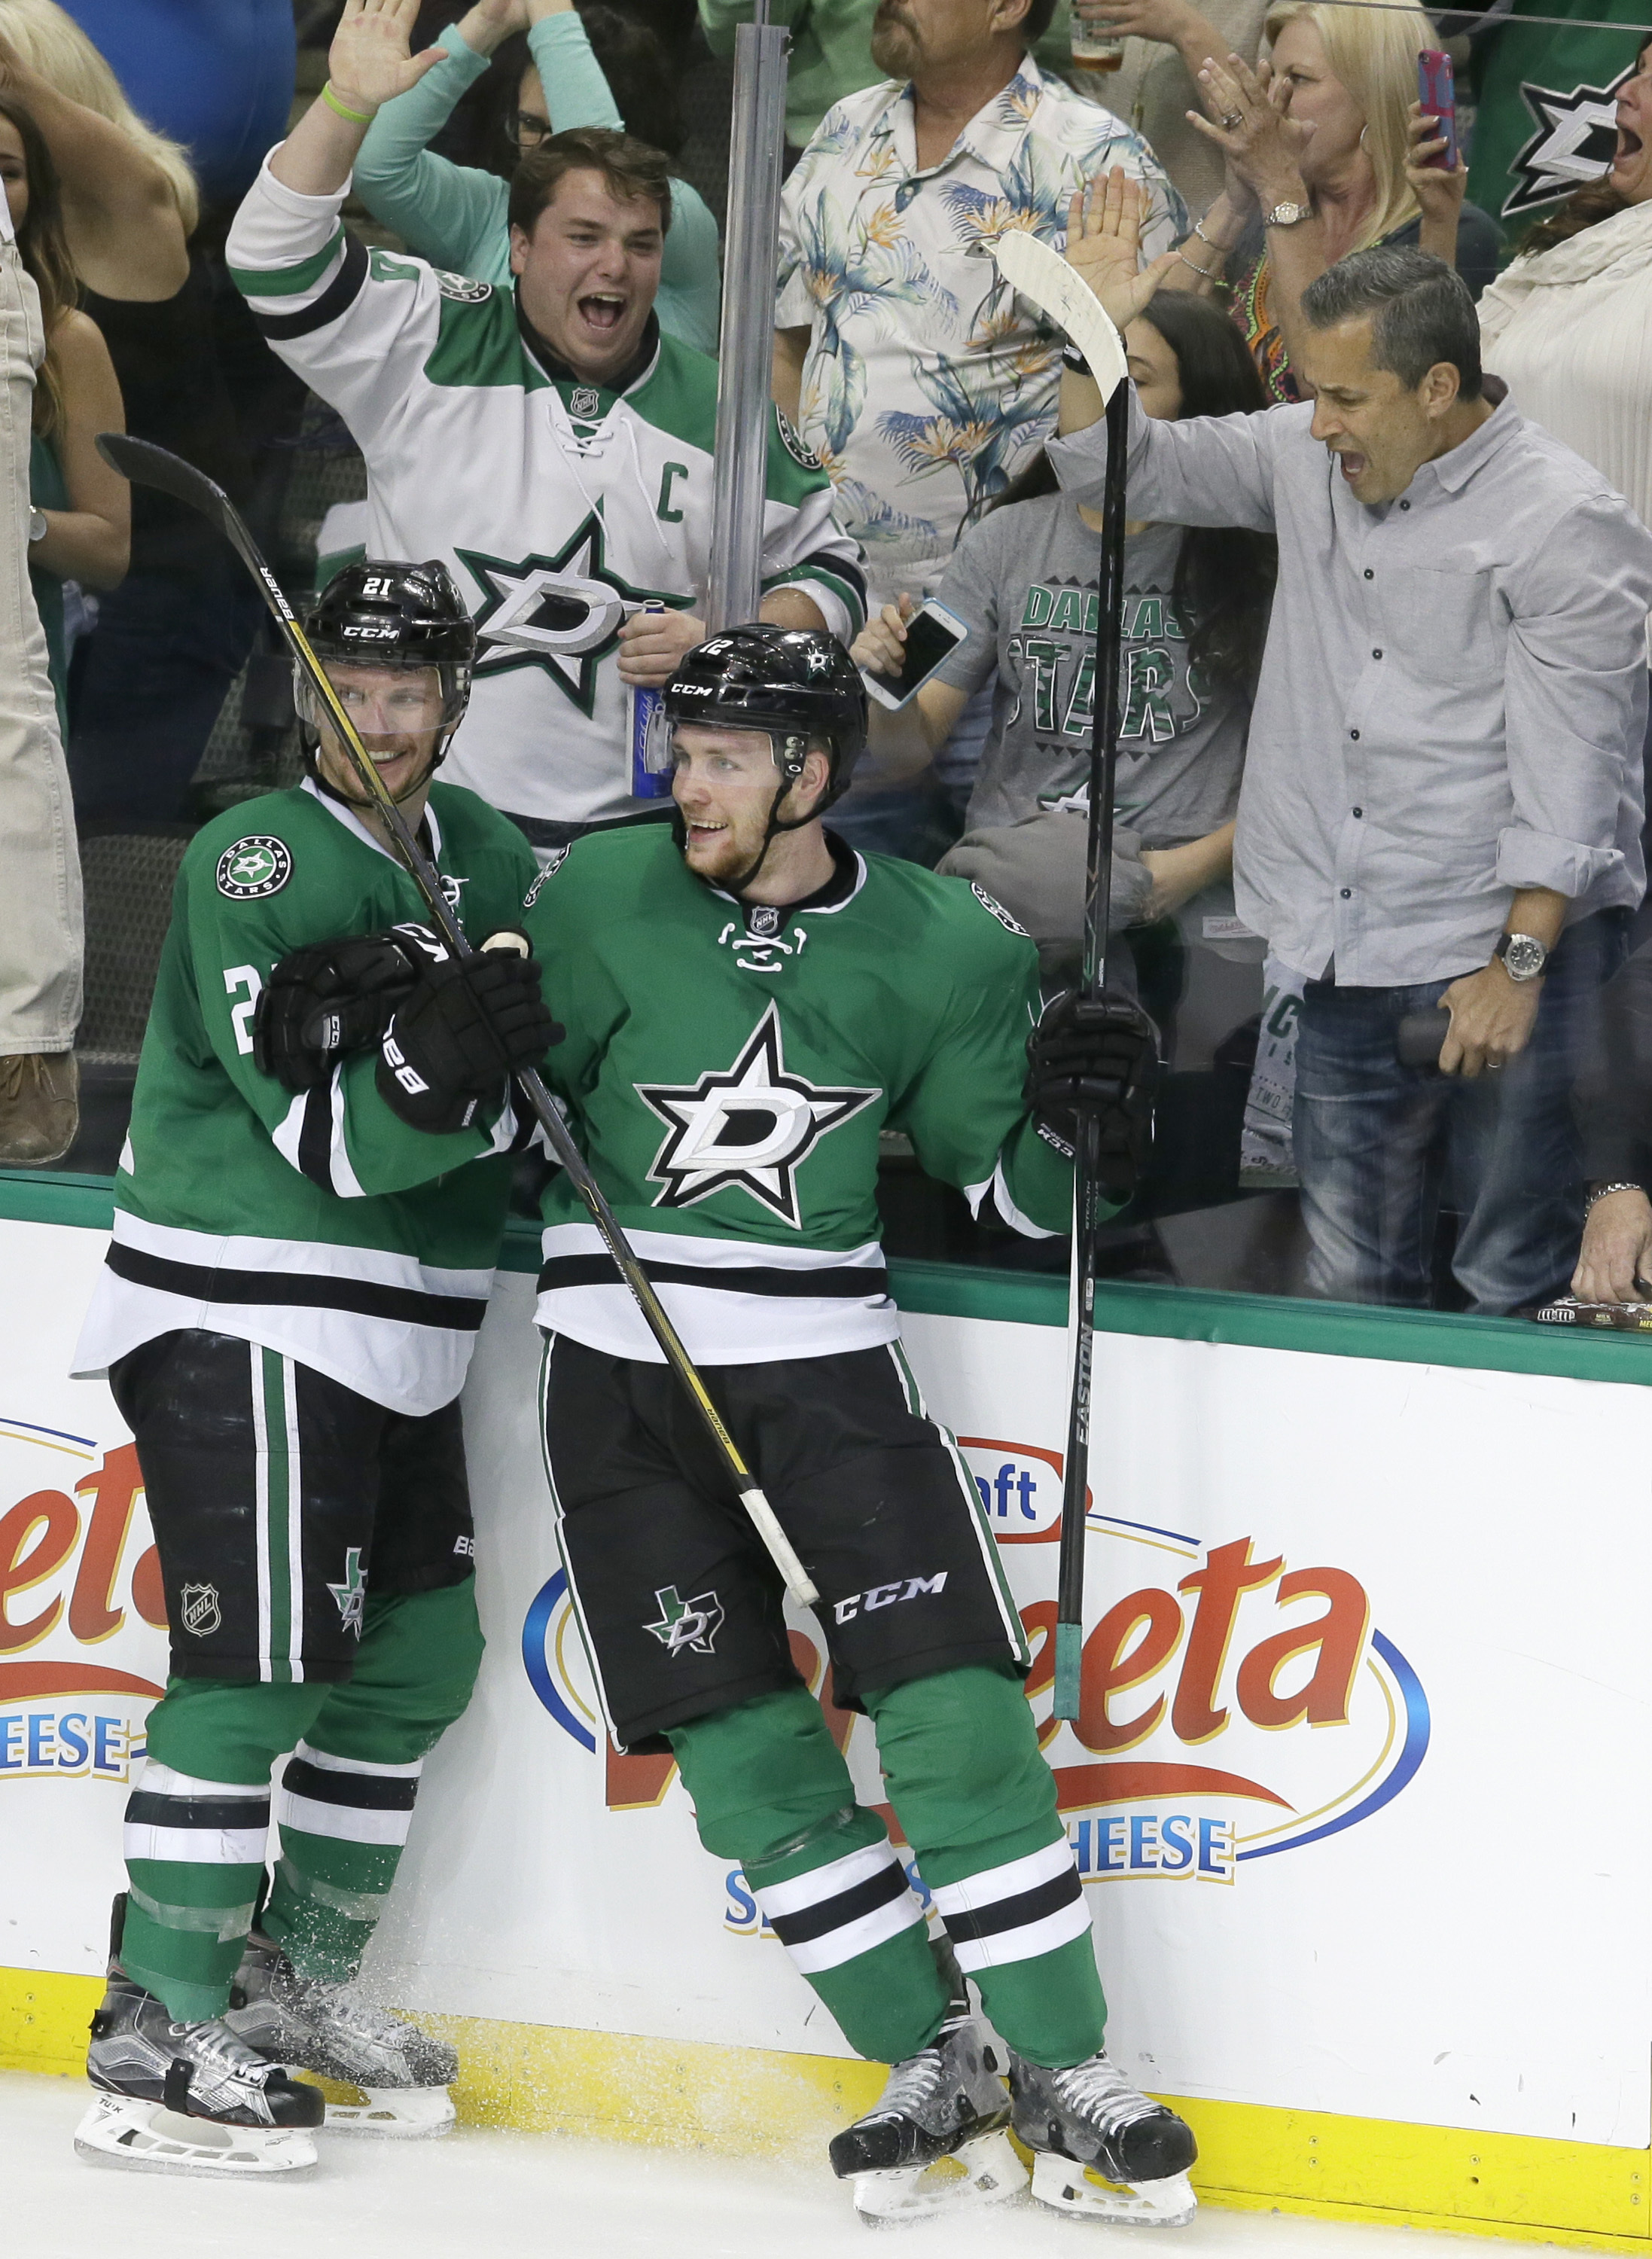 Fans, background, react as Dallas Stars center Radek Faksa (12) celebrates his goal with teammate Antoine Roussel (21) during the third period in Game 1 in the second round of the NHL Stanley Cup playoffs against the St. Louis Blues, Friday, April 29, 201